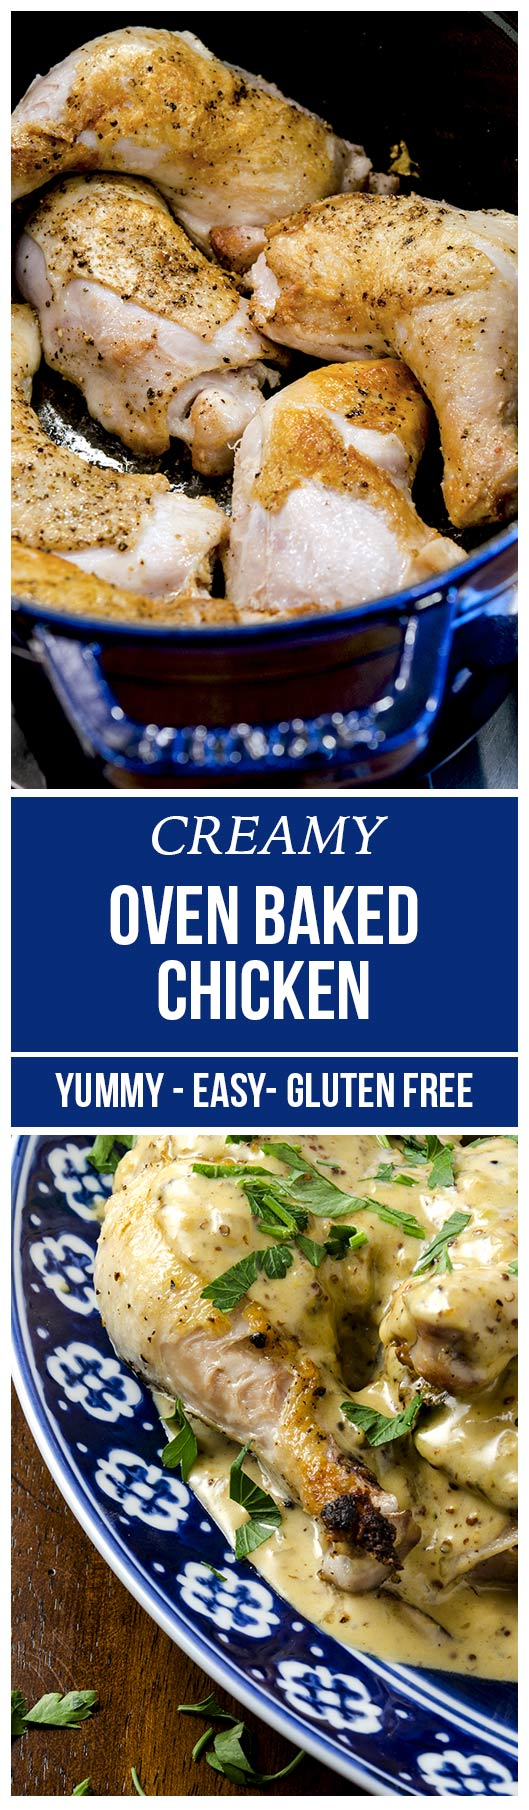 Creamy Oven Baked Chicken Legs Recipe